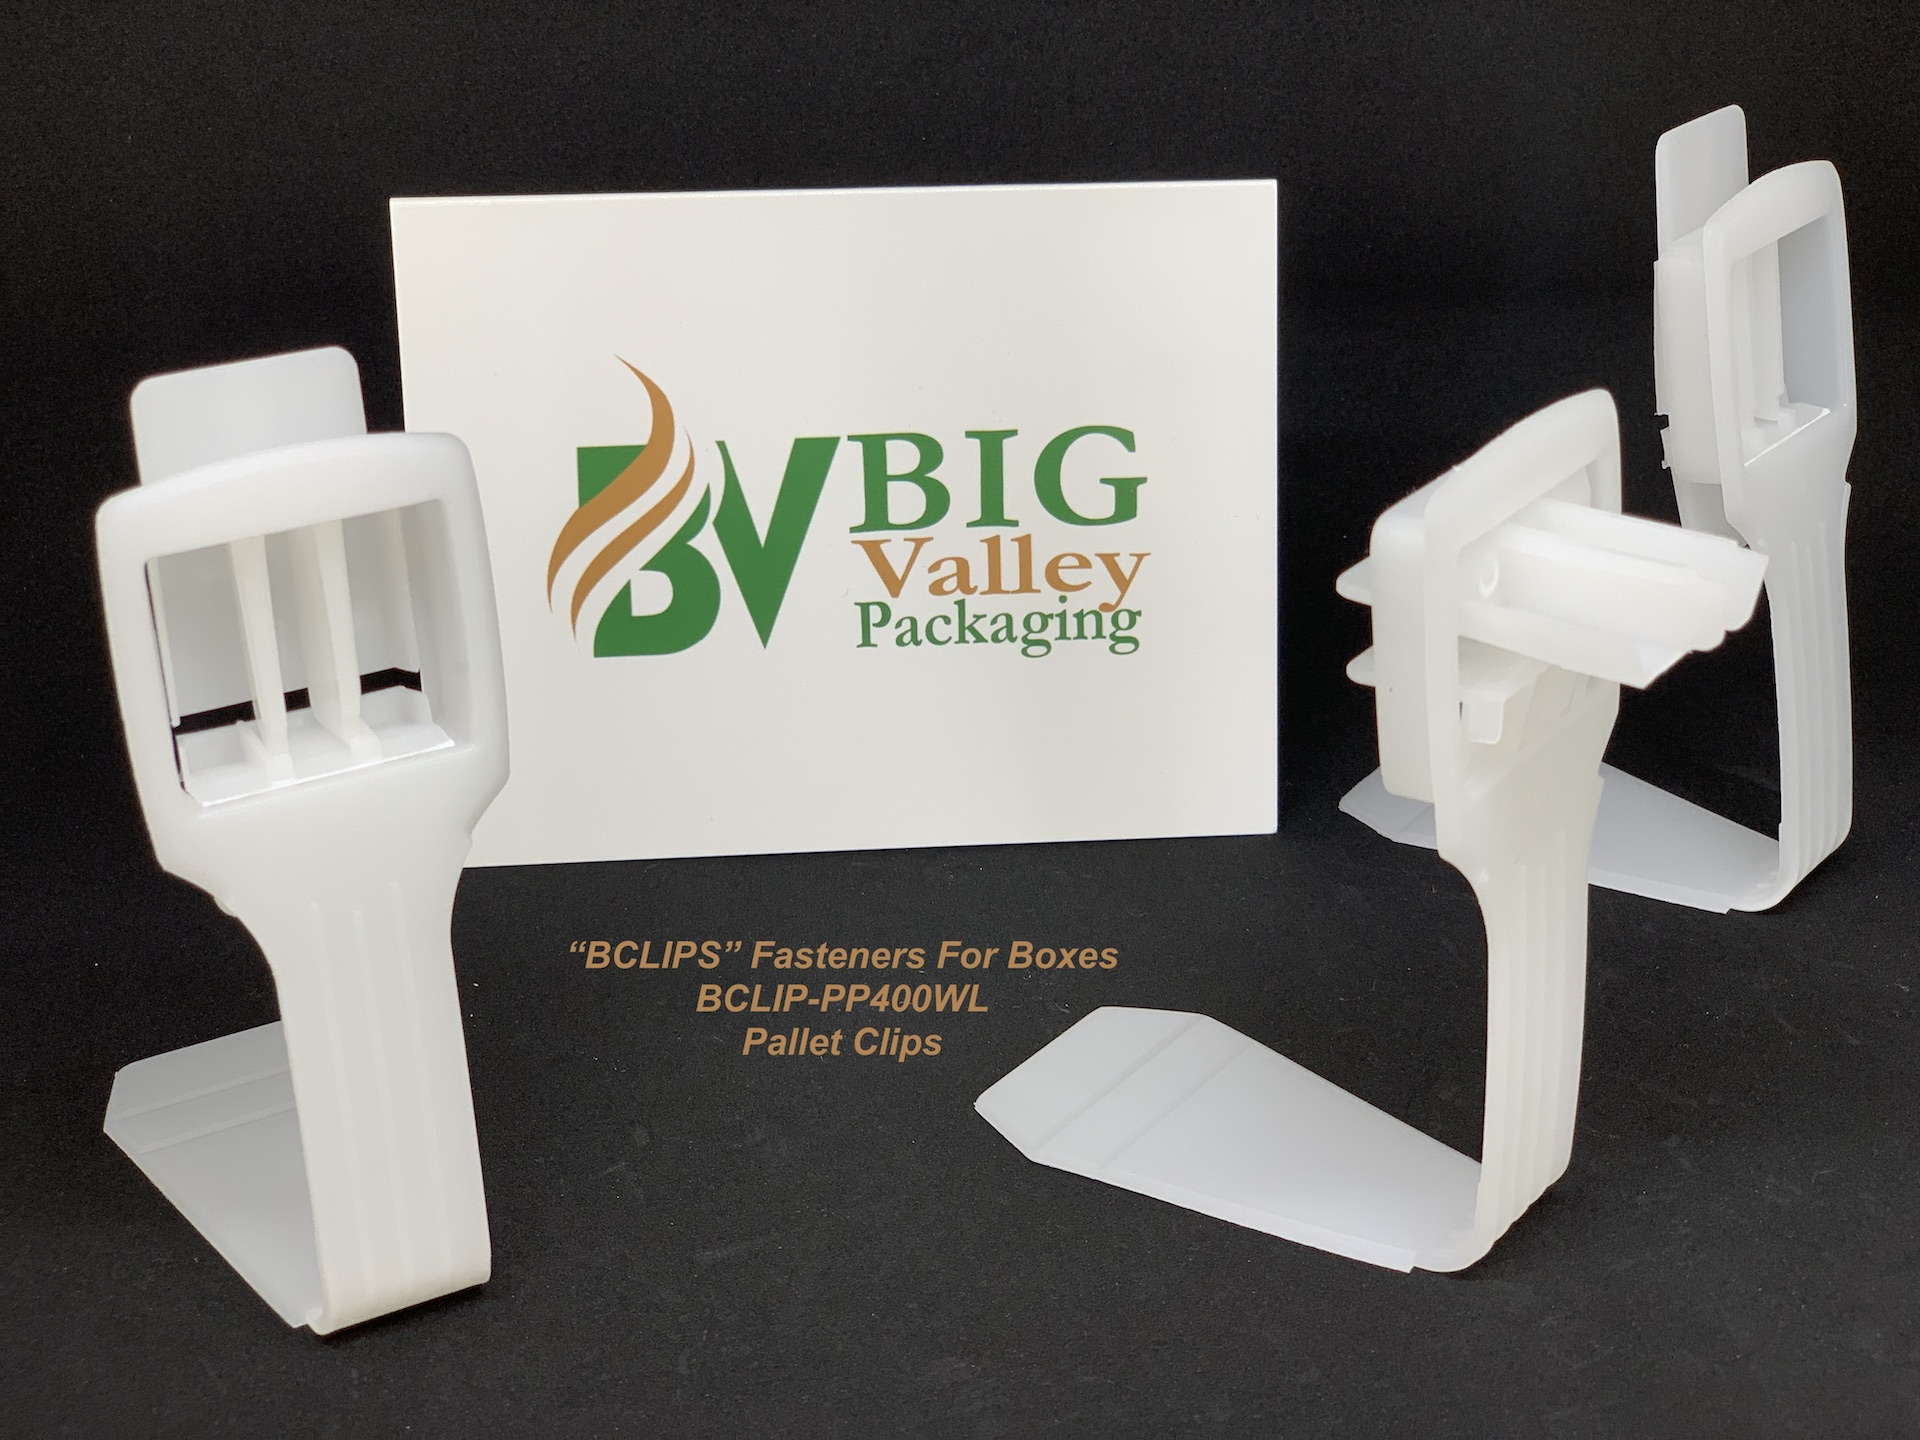 BCLIP-PP400WL BCLIP Pallet Clip Connecting Cardboard Boxes To Wood Pallets